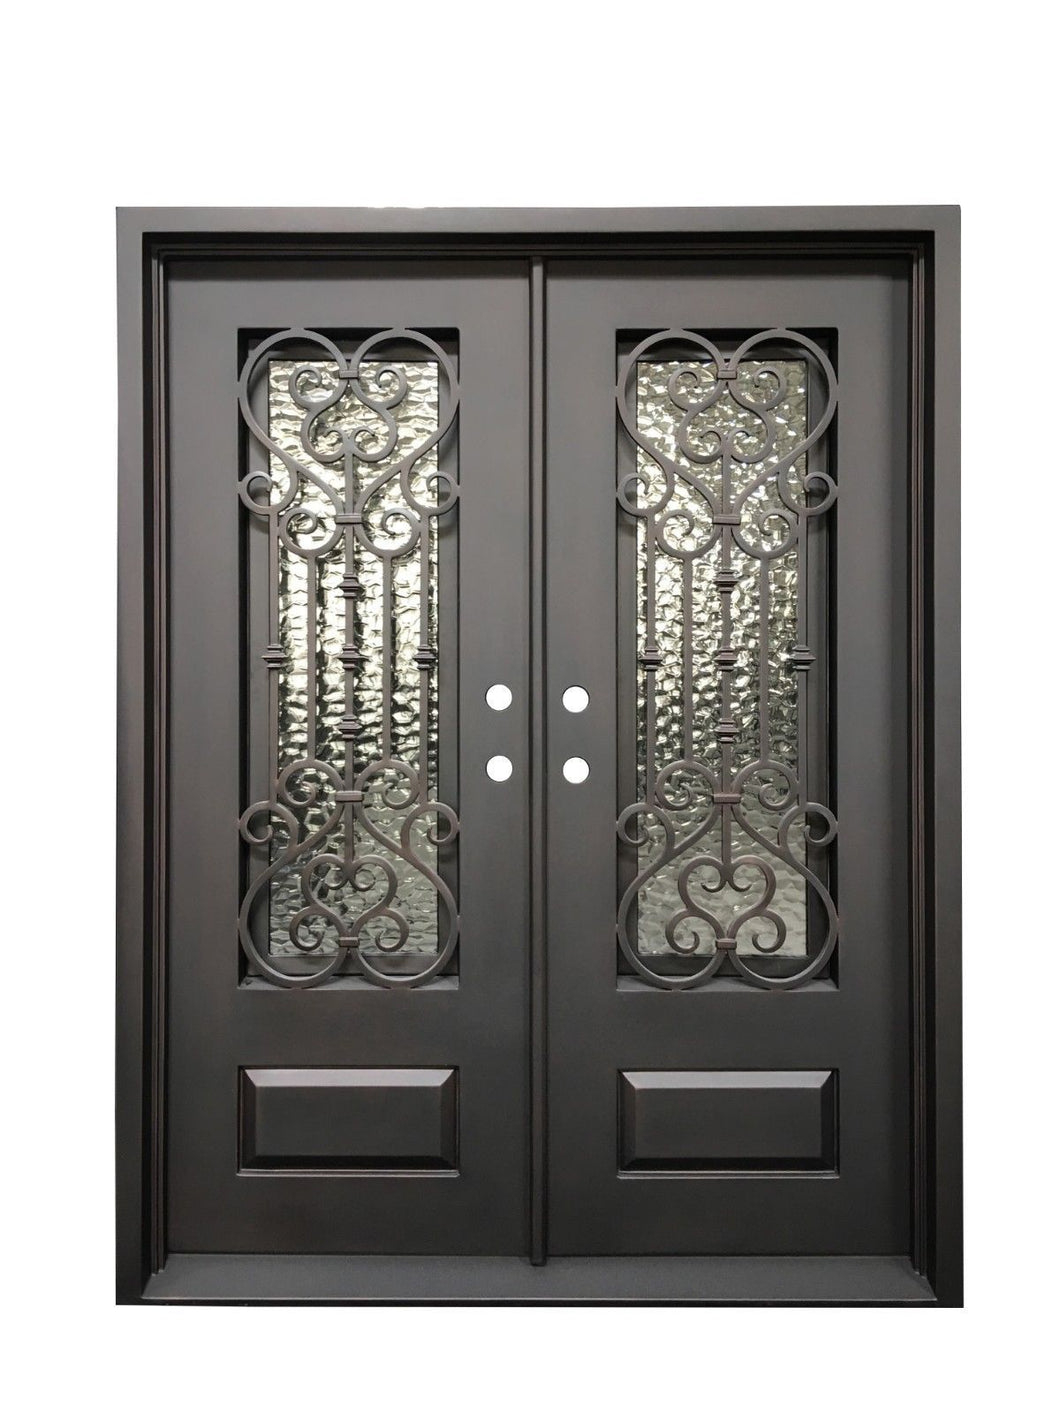 Angellum 61.5x96 Flat Top Iron Door